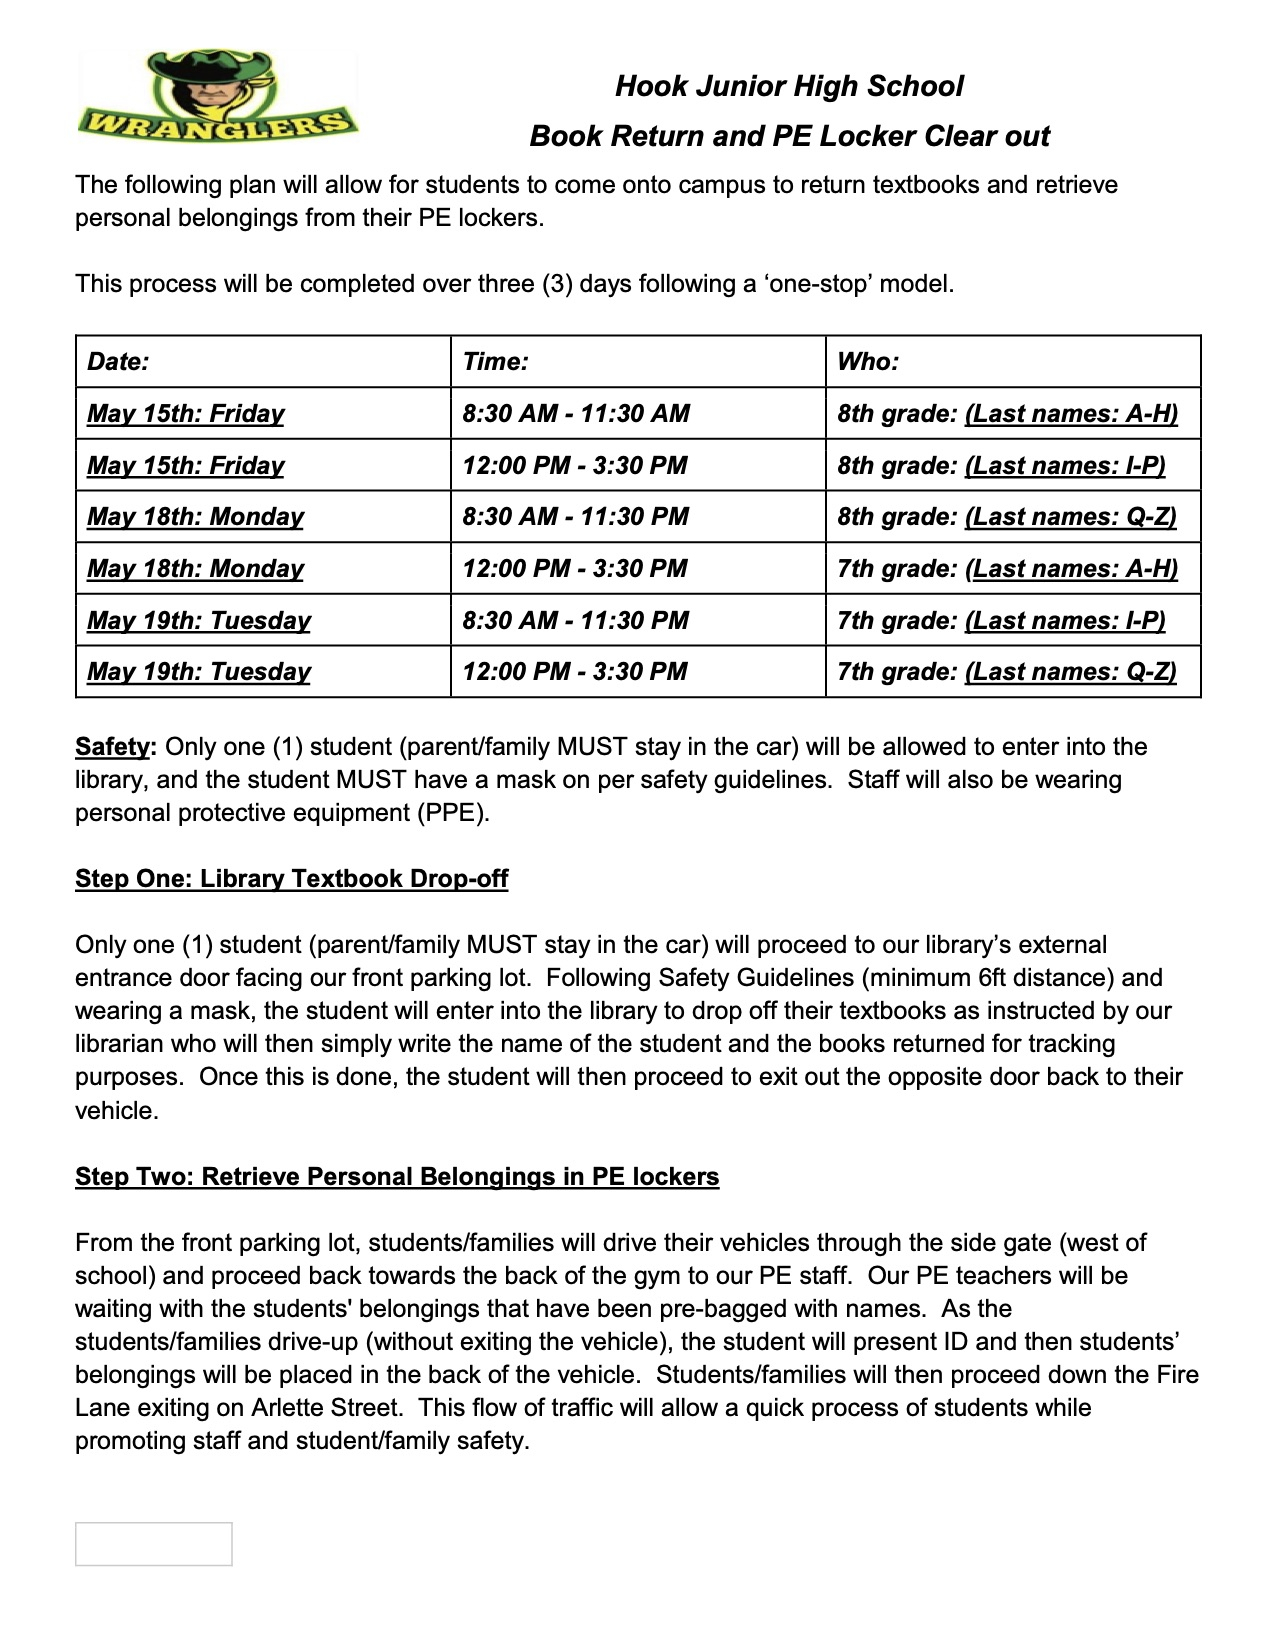 Home - Imogene Garner Hook Junior High School For Victorville School District Class Schedule